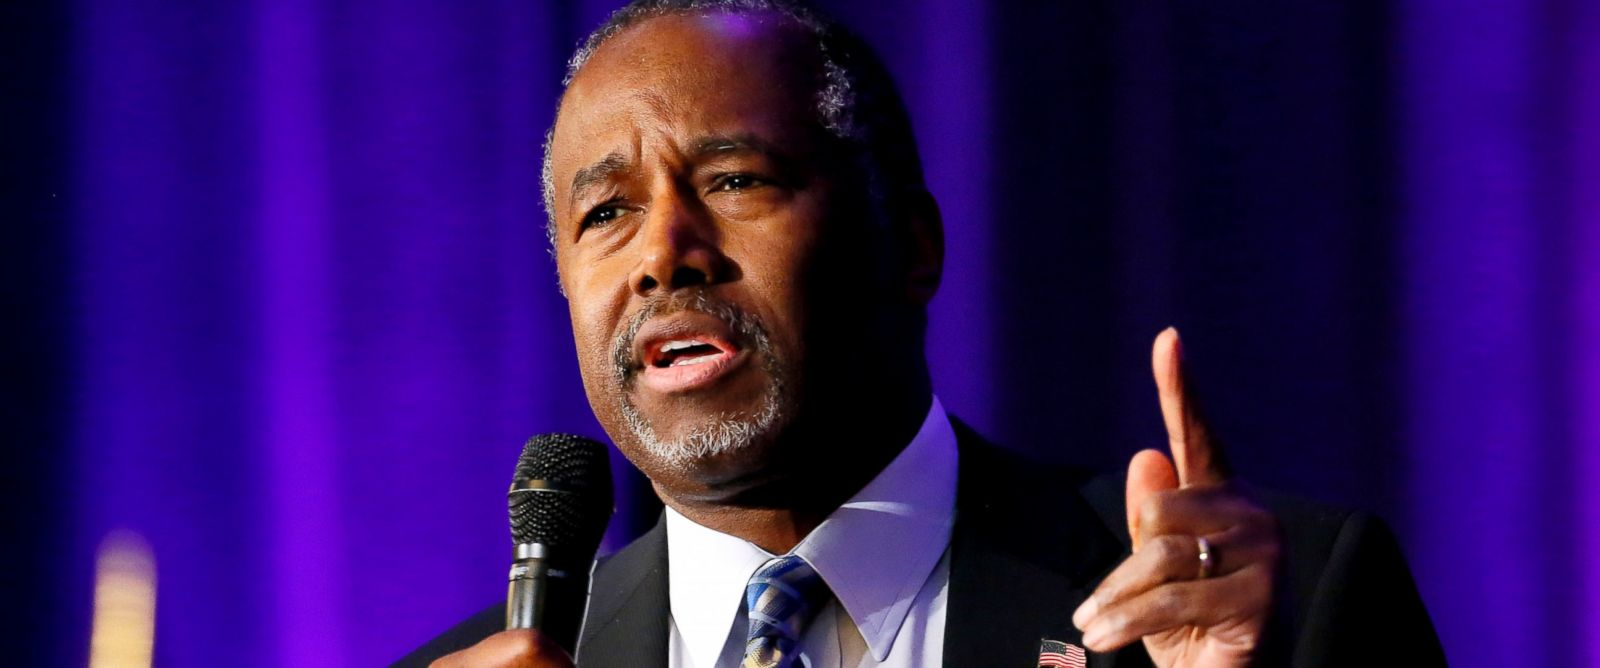 PHOTO: Republican Presidential candidate Dr. Ben Carson speaks on Dec. 4, 2015 in Phoenix at the States and Nation Policy Summit of the American Legislative Exchange Council and the American City County Exchange.